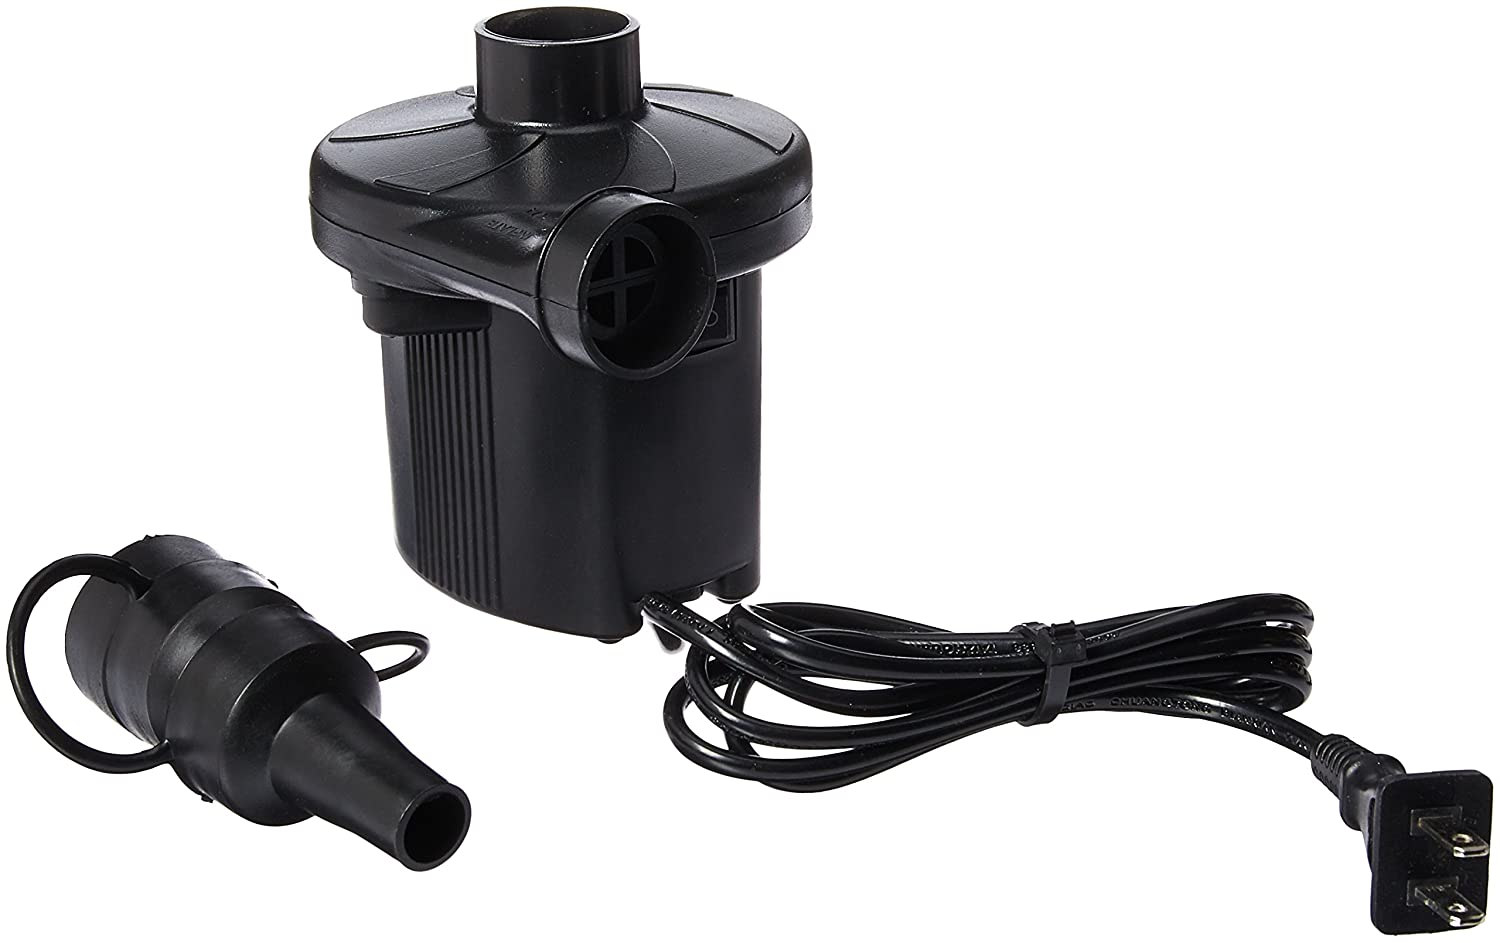 HappyCell 150W Quick-Fill AC Electric Air Pump 110-120 Volt to Inflate/Deflate Inflatable Boats Mattresses with 3 Assorted Nozzles Perfect for Using Indoors(60Hz, Black) FBA_HC-WT-floattoy0229